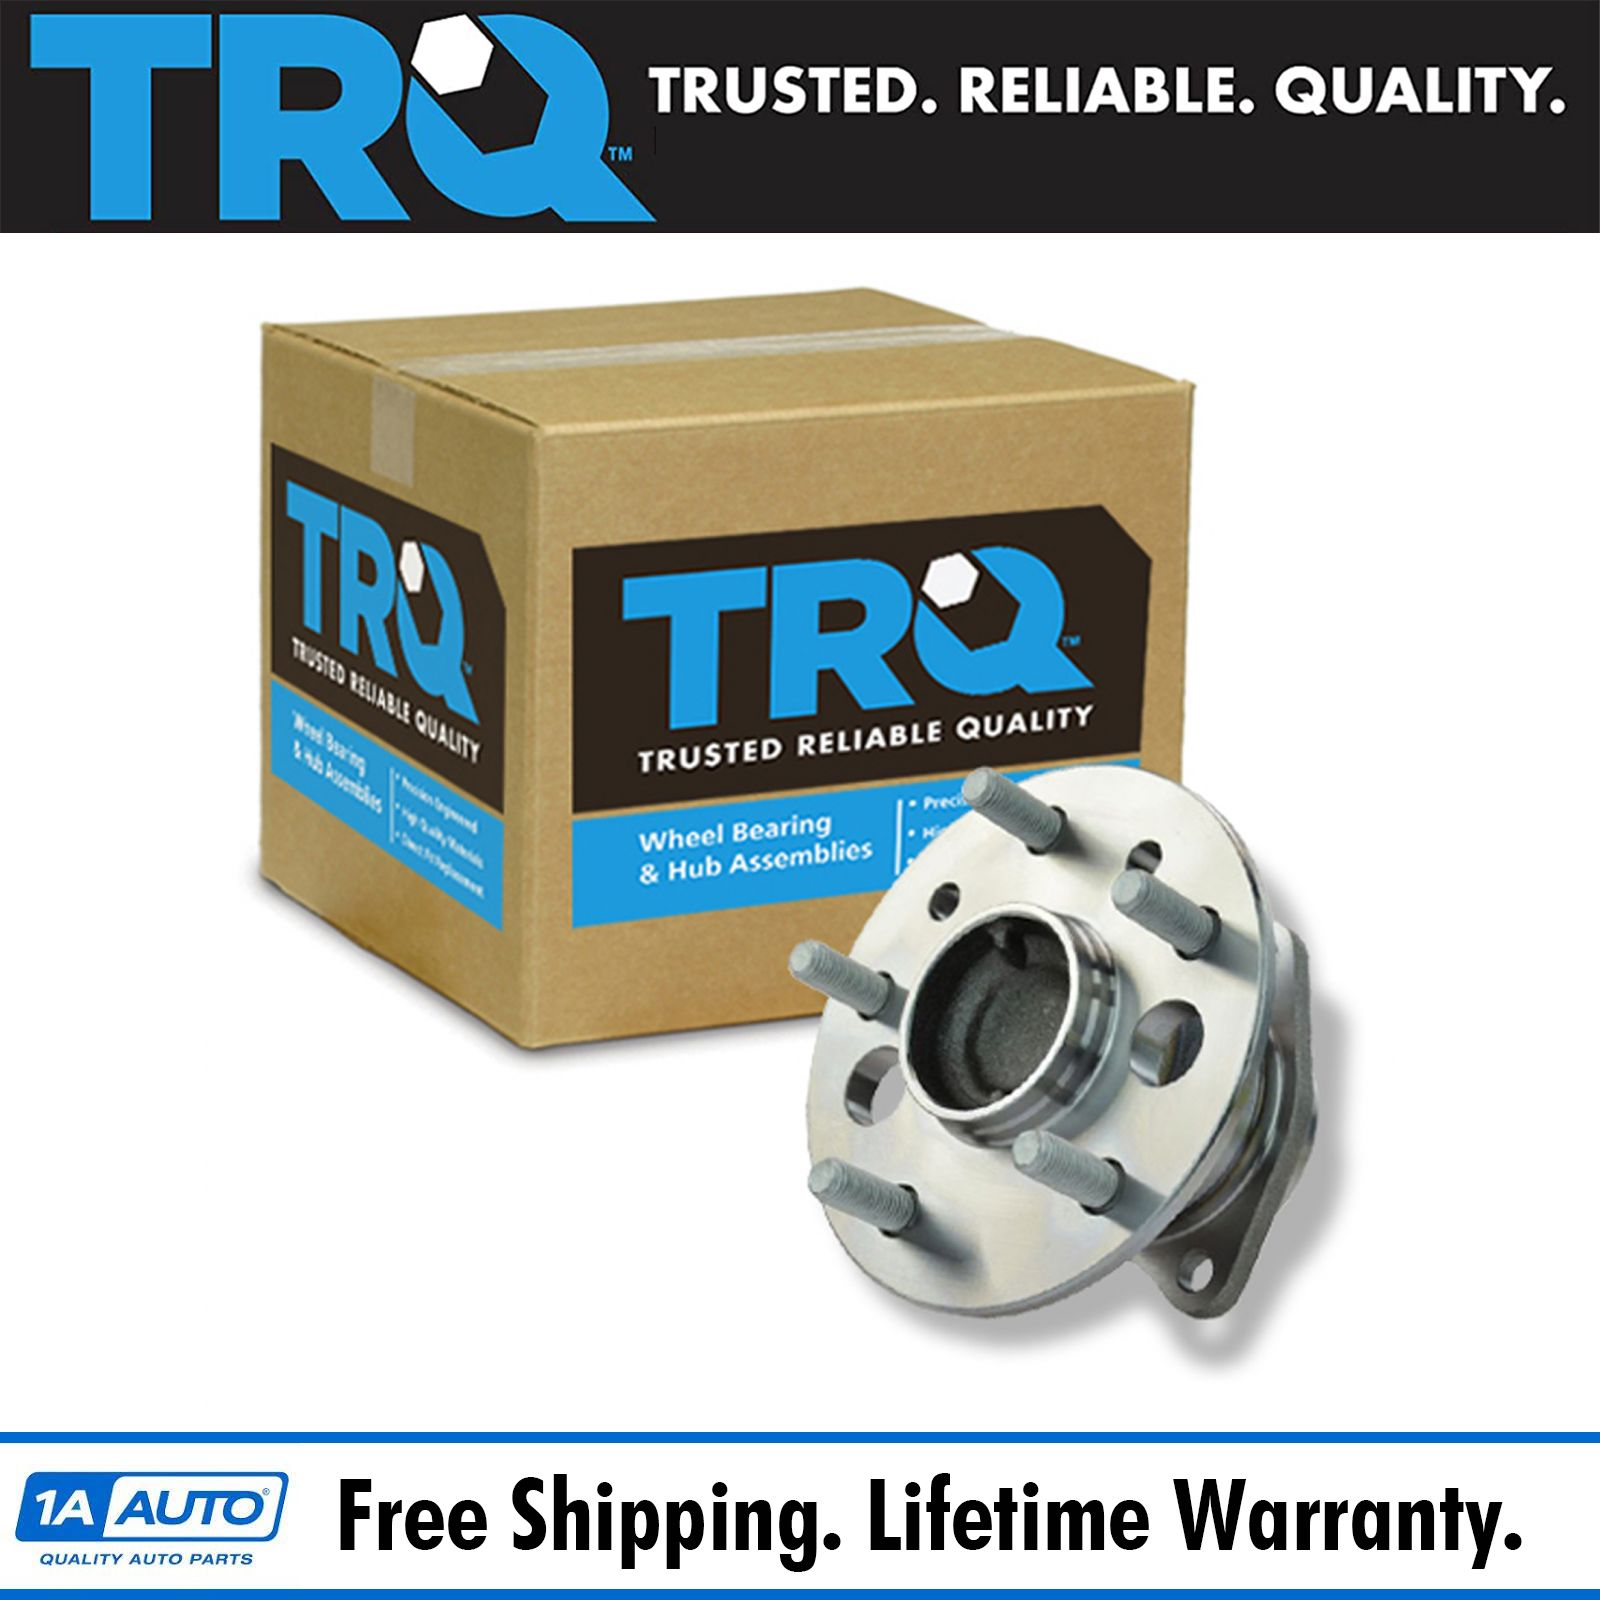 2019 Toyota Camry Hub Bearing Assembly Rear Axle Left: TRQ Rear Wheel Hub & Bearing Driver Side Left For Toyota